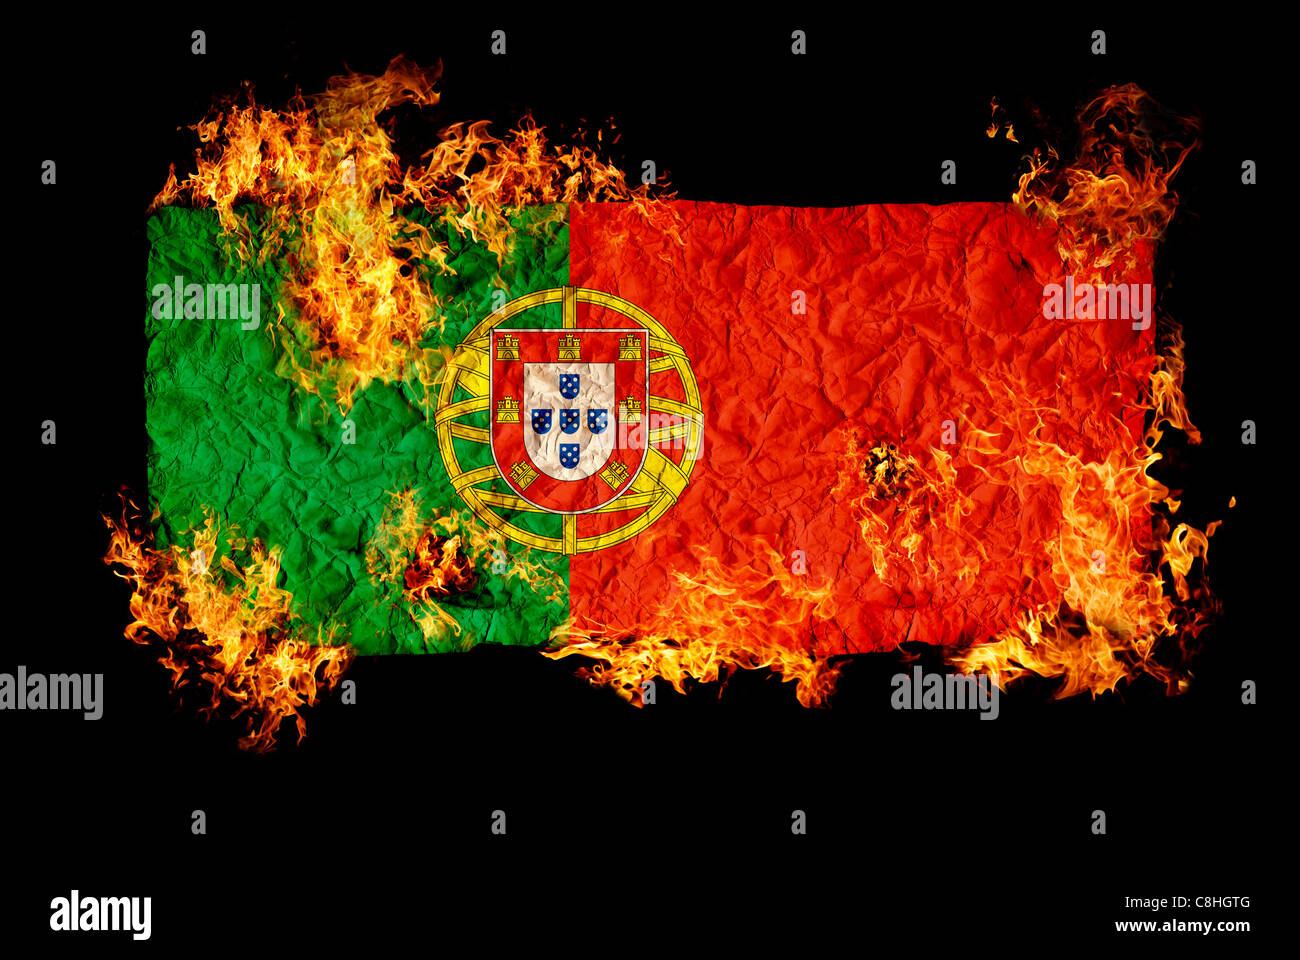 National Symbols And Flag Of Portugal Stock Photo 39724400 Alamy